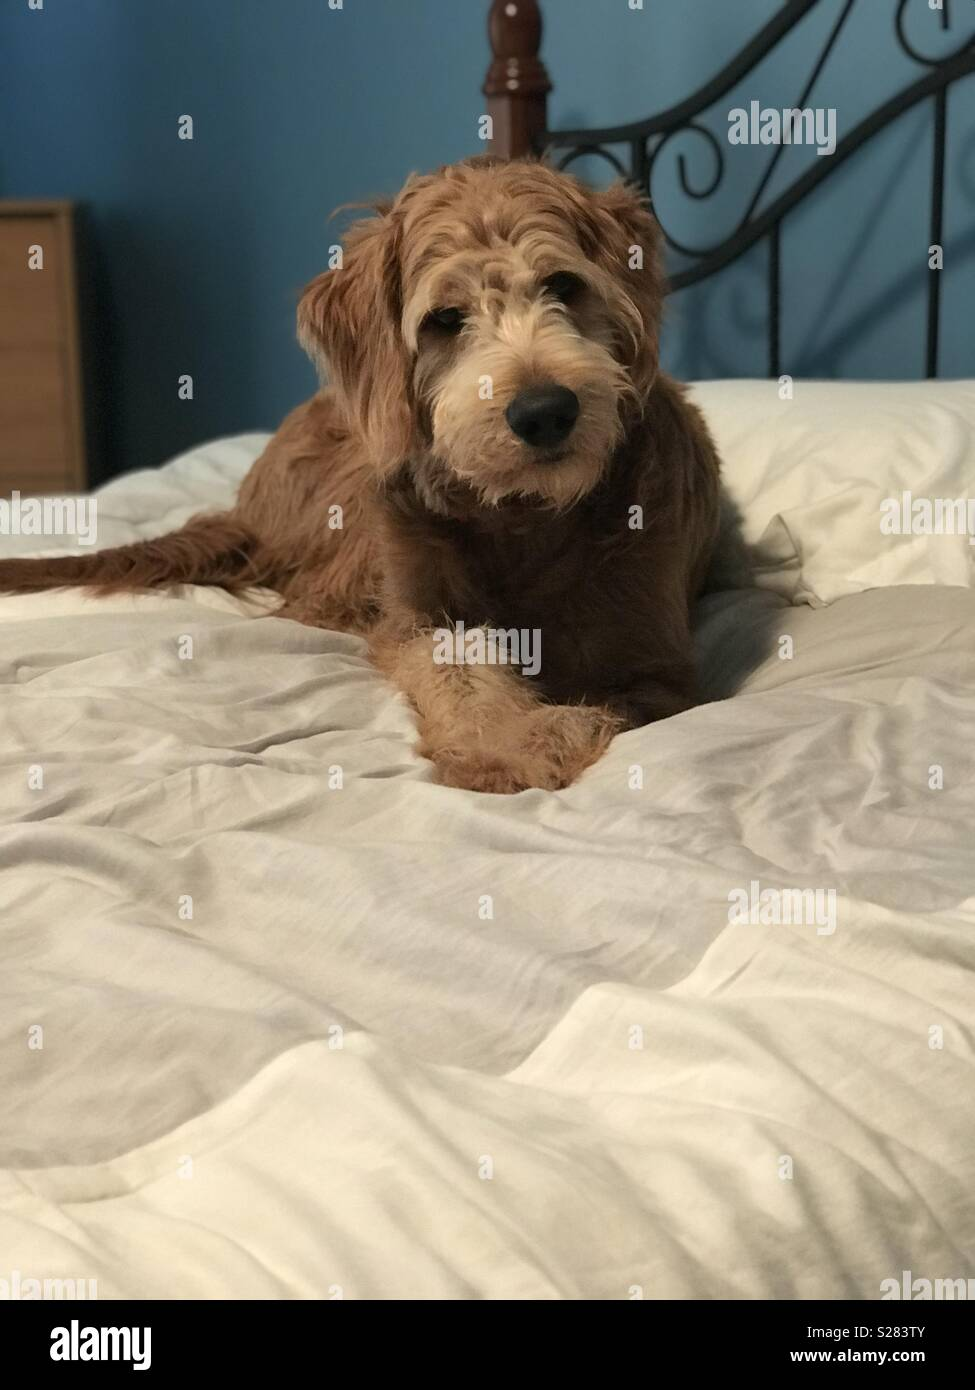 Goldendoodle lounging on a bed - Stock Image